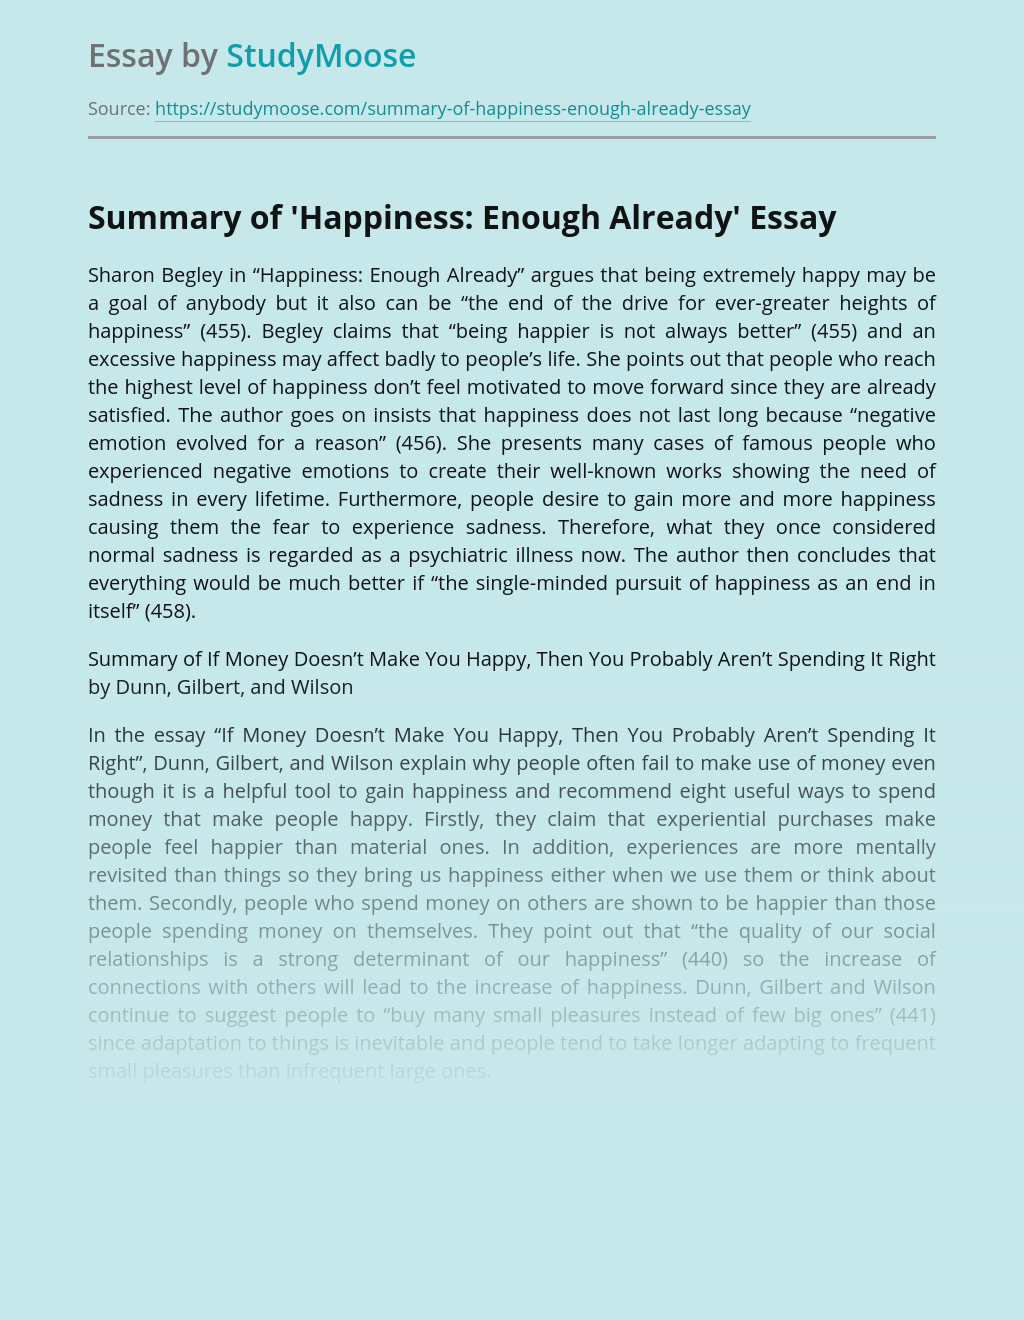 Summary of 'Happiness: Enough Already'